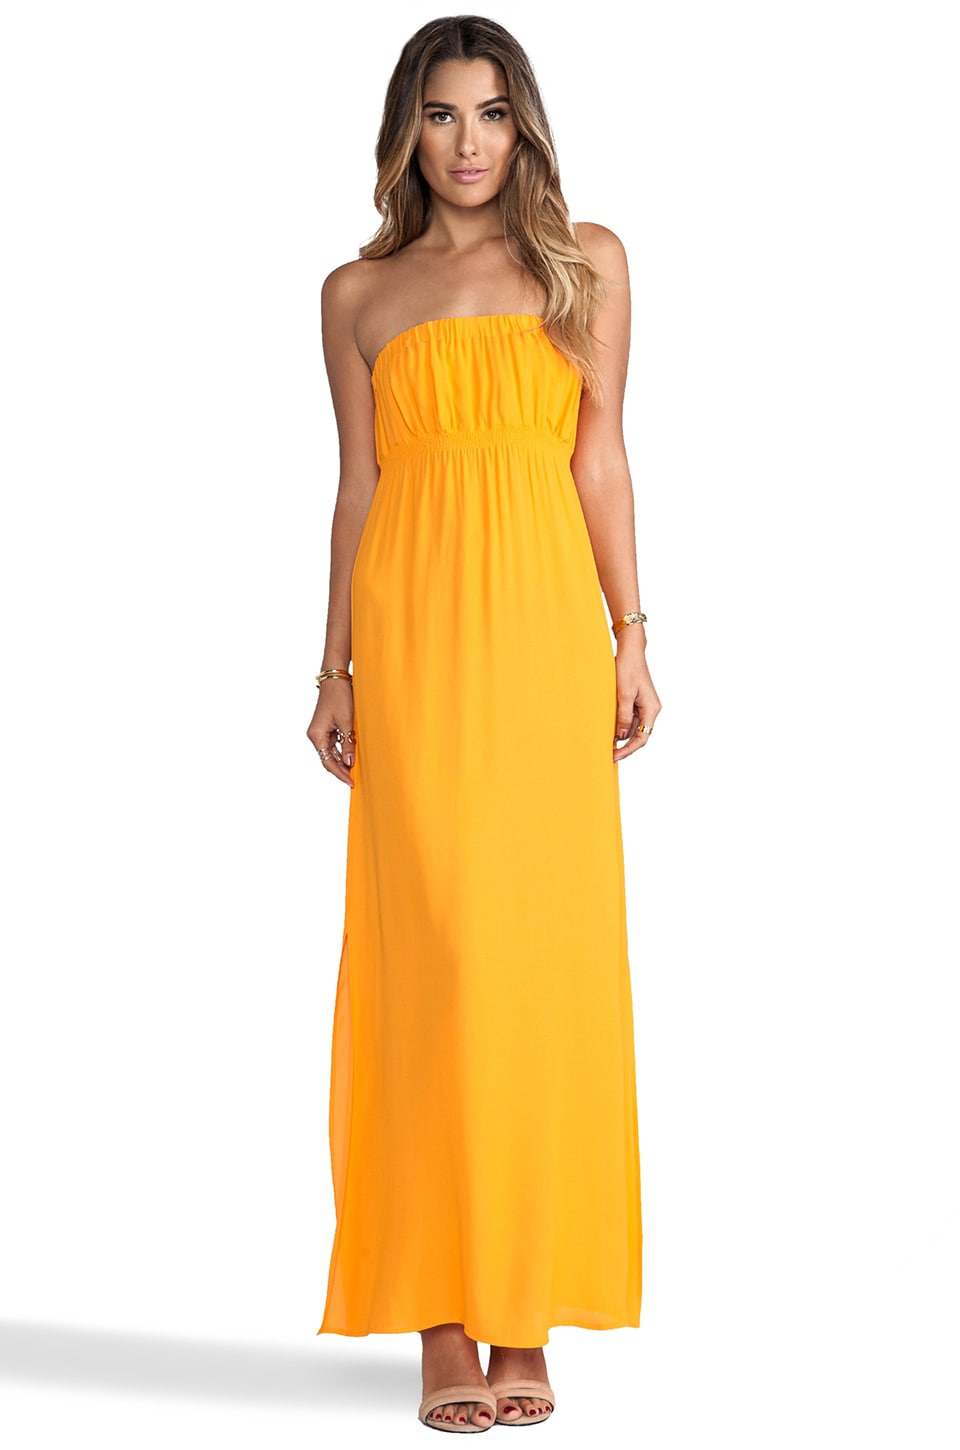 Twelfth Street By Cynthia Vincent Strapless Maxi Dress in Tangerine